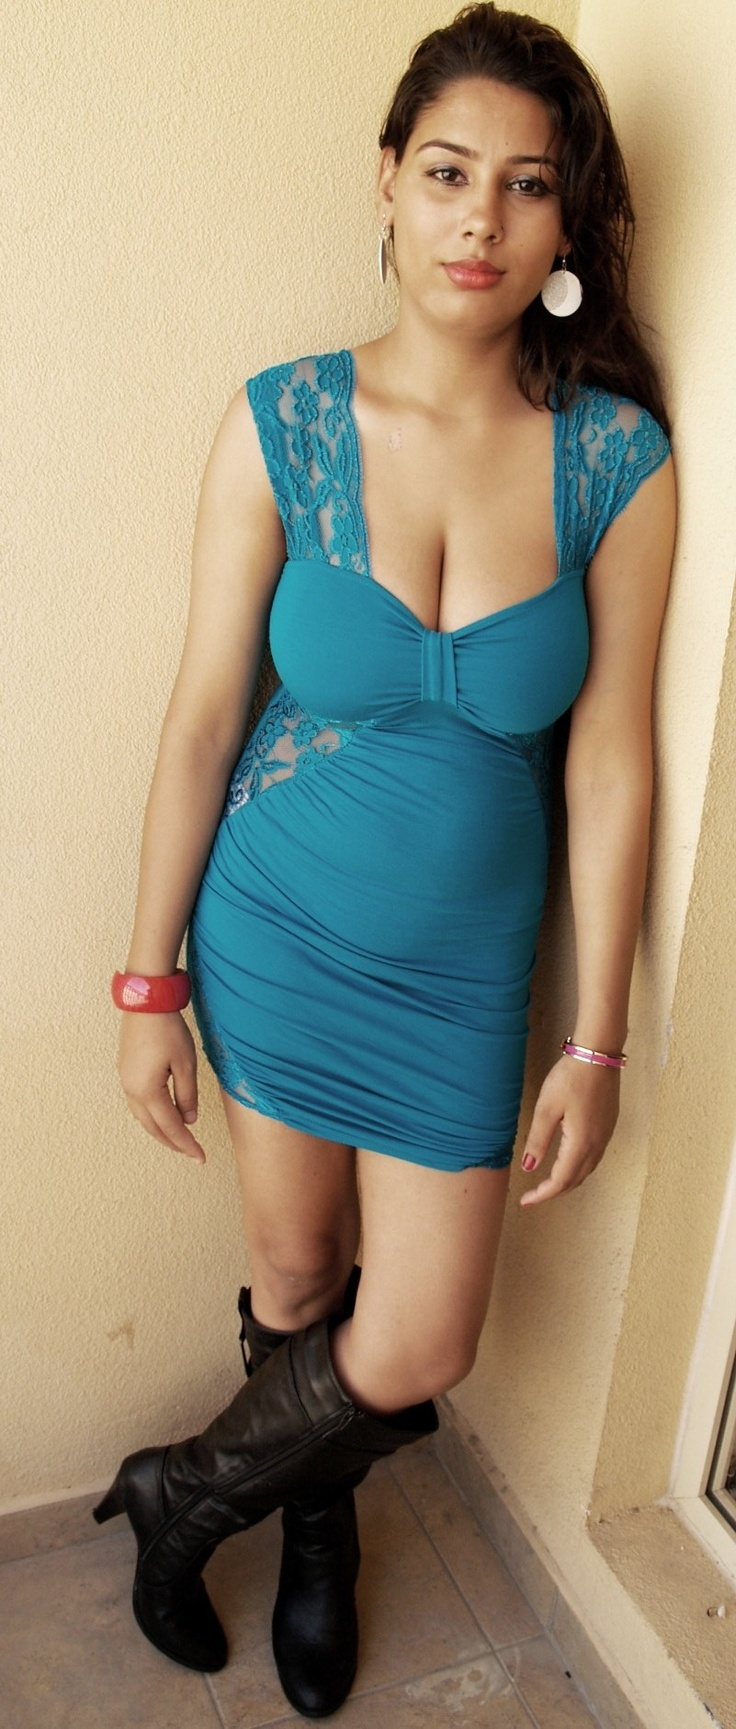 house escort indian girl escort service